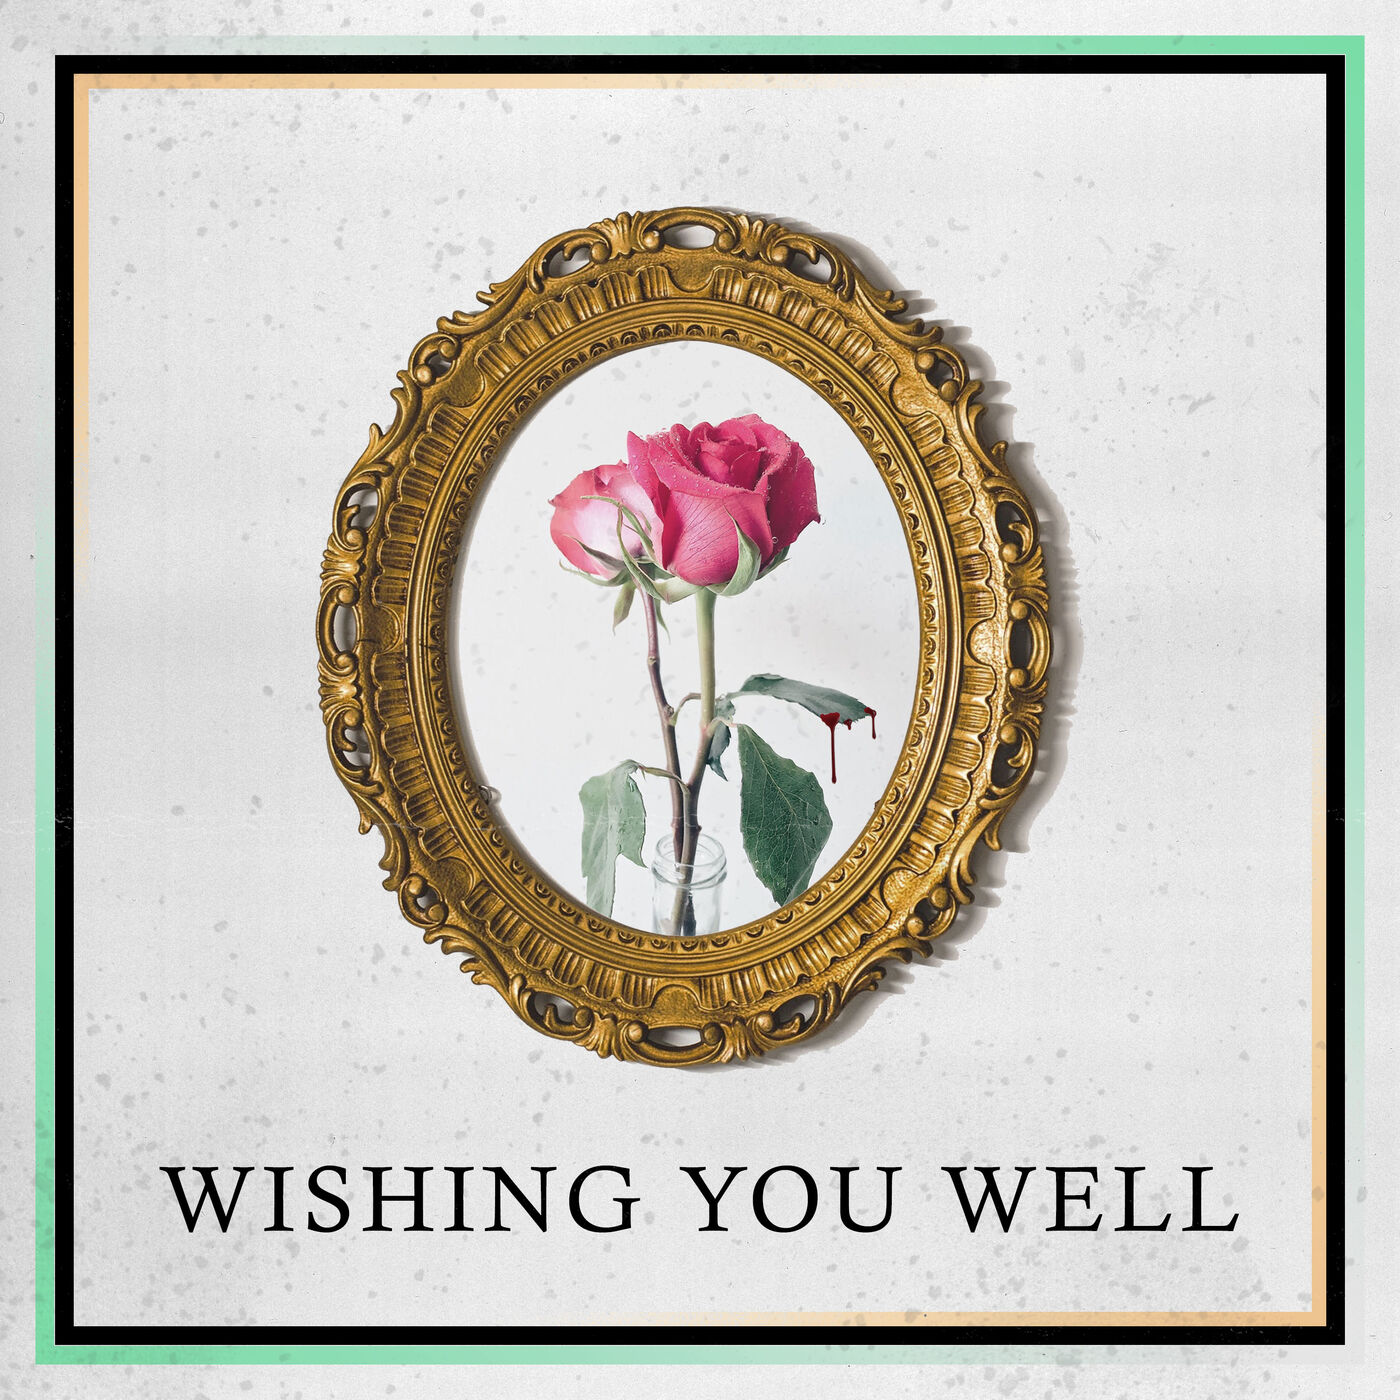 Melbourne - Wishing You Well [single] (2020)